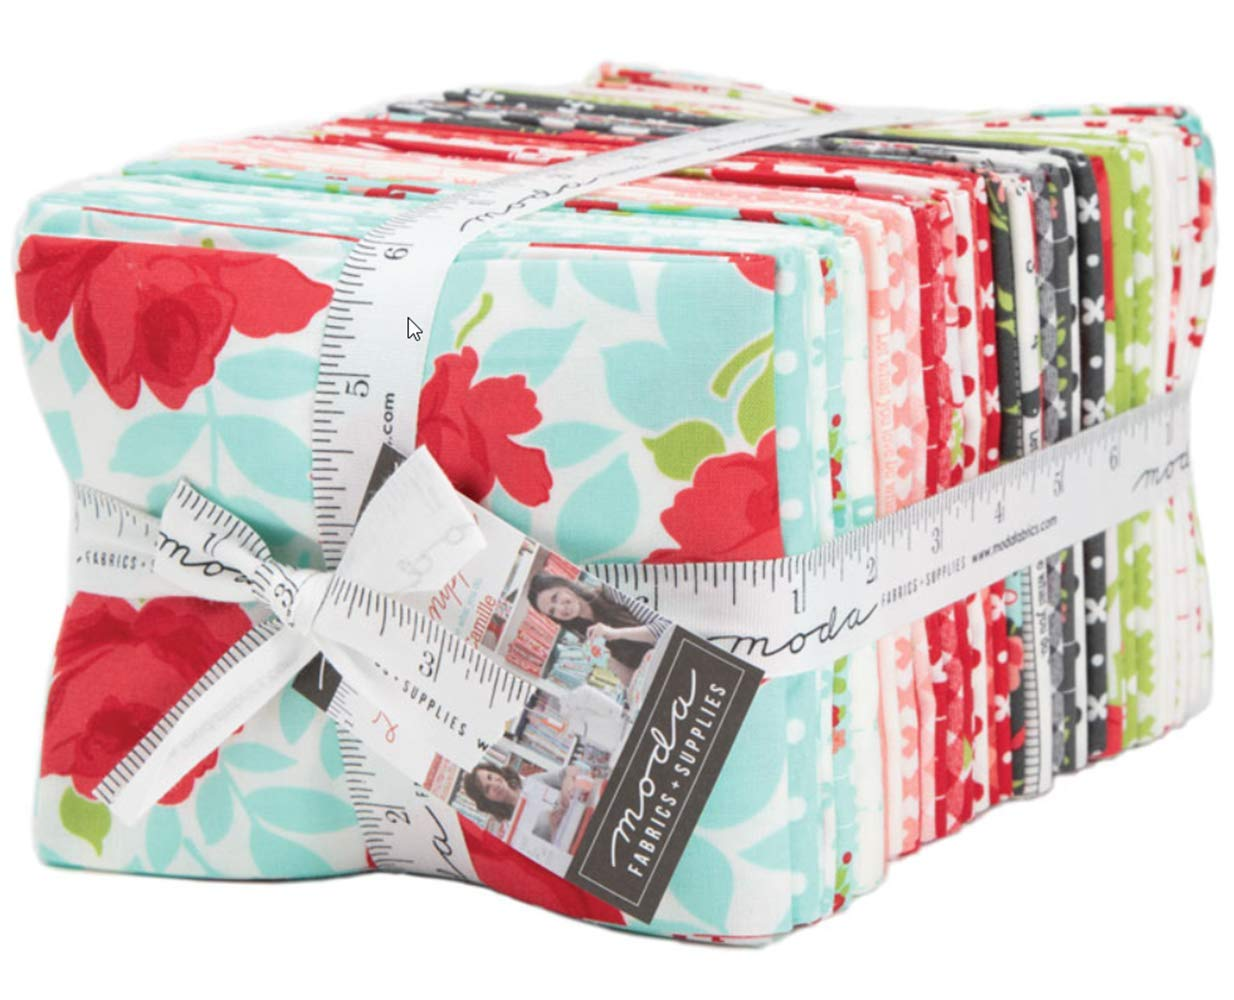 Little Snippets 40 Fat Quarter Bundle by Bonnie & Camille for Moda Fabrics 55180AB by Moda Fabrics